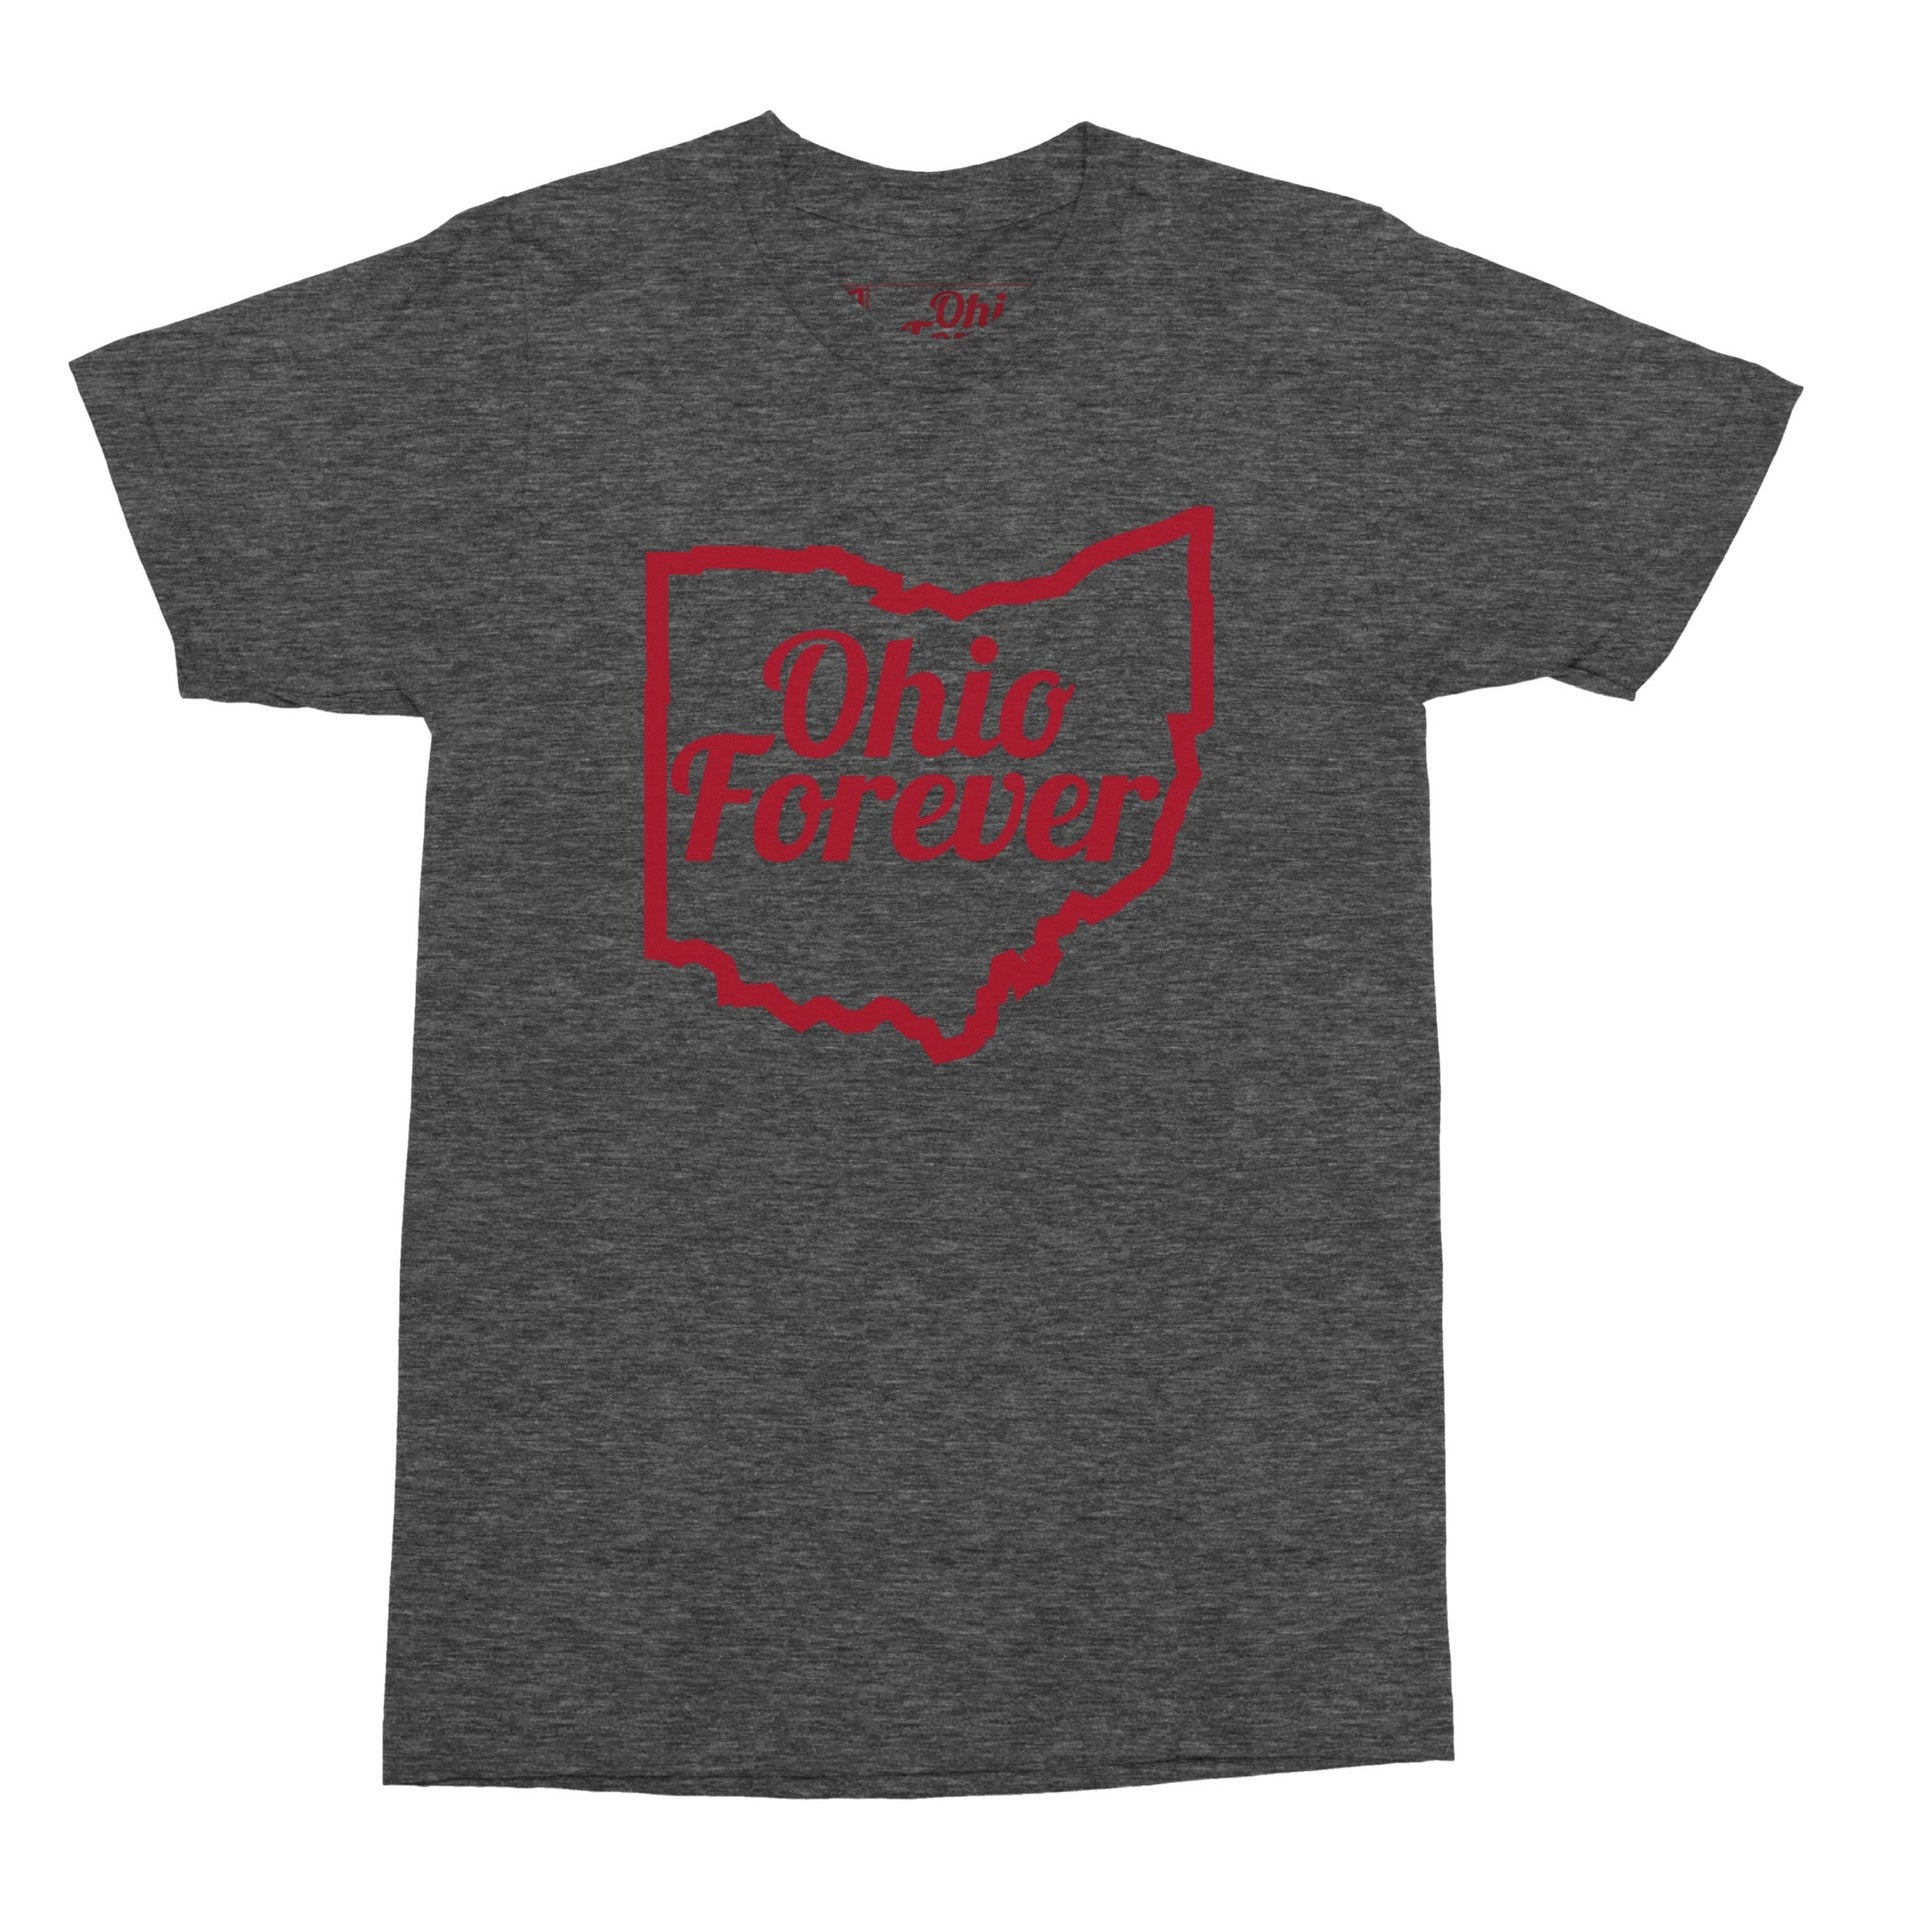 Ohio Forever Scarlet T-Shirt - Celebrate Local, Shop The Best of Ohio